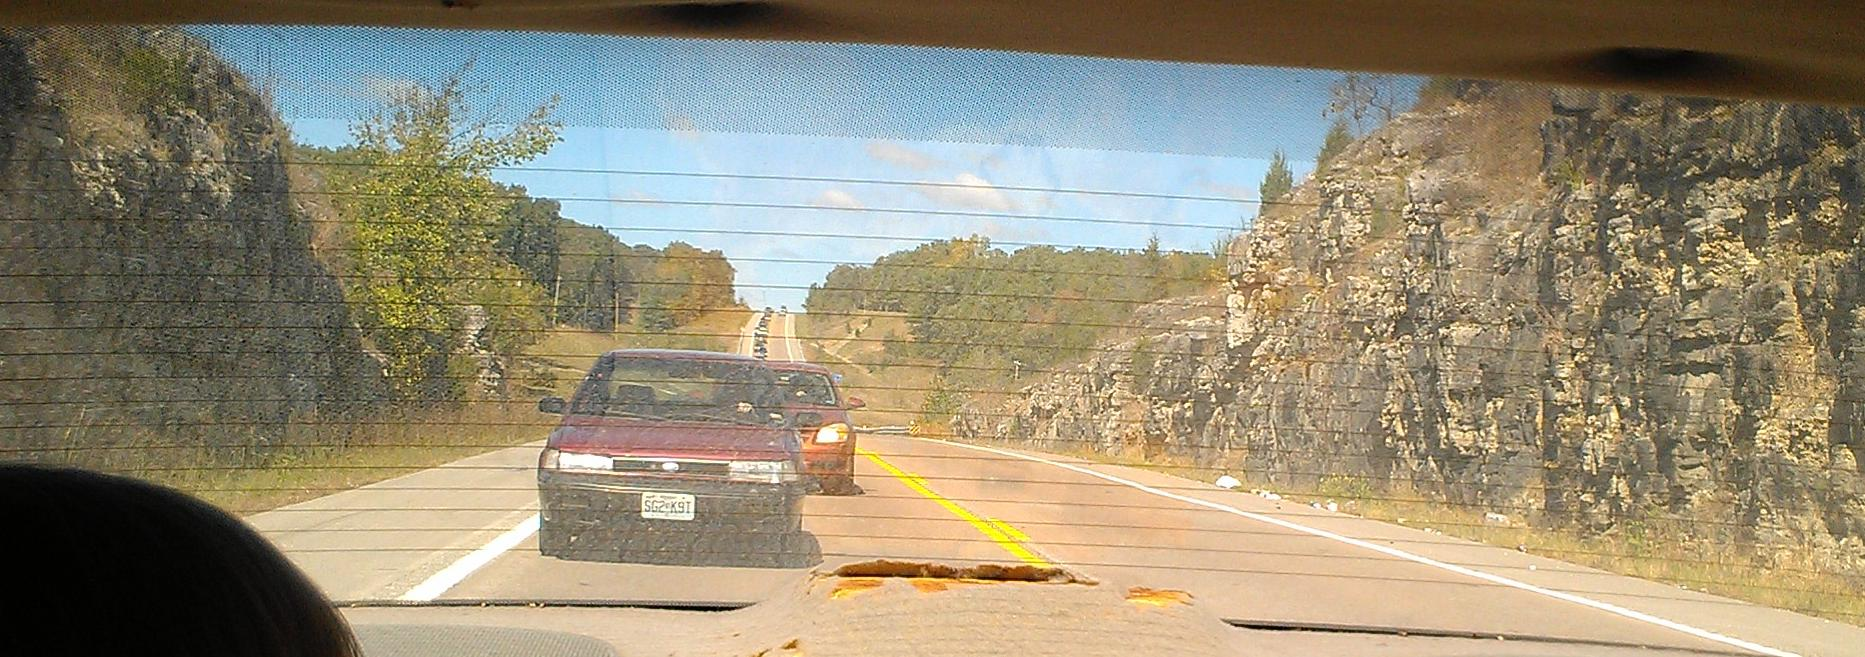 Traffic Backed up on HWY 5 During Jacob's Cave Swap